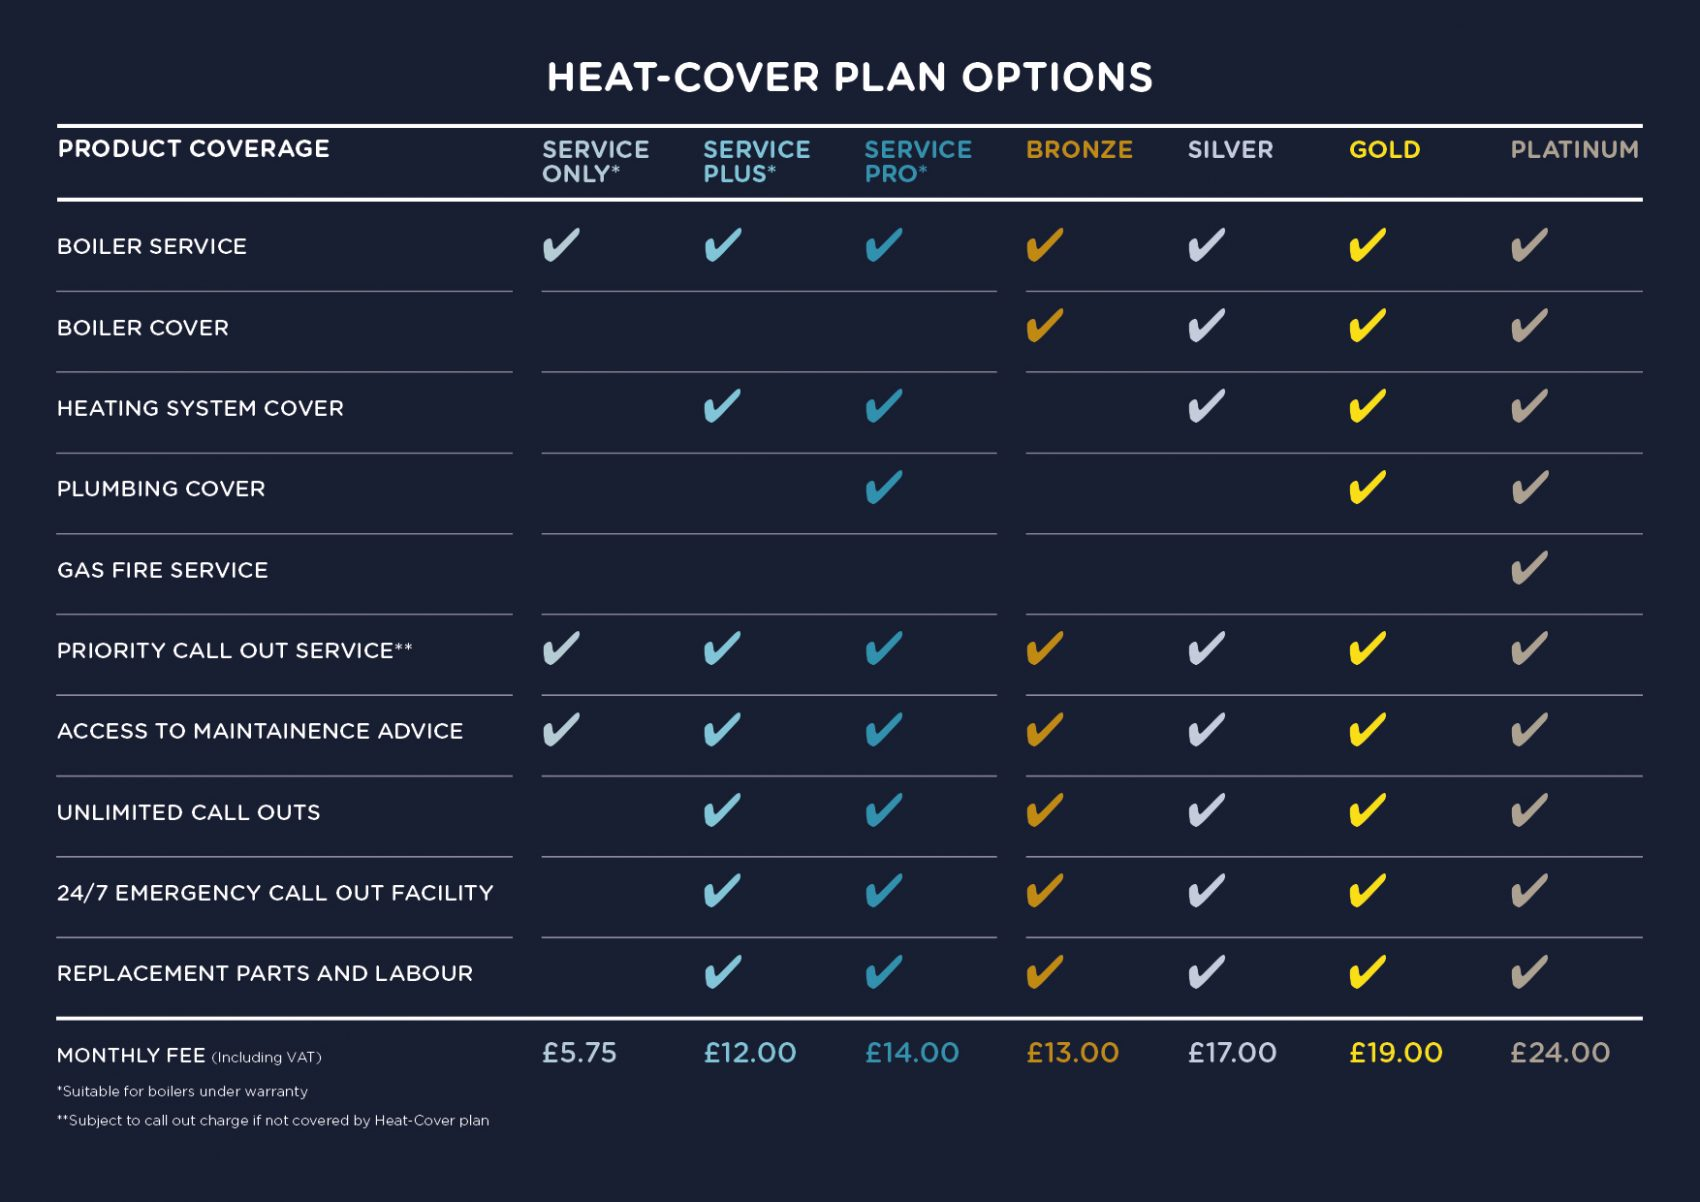 Heat-Cover plan options